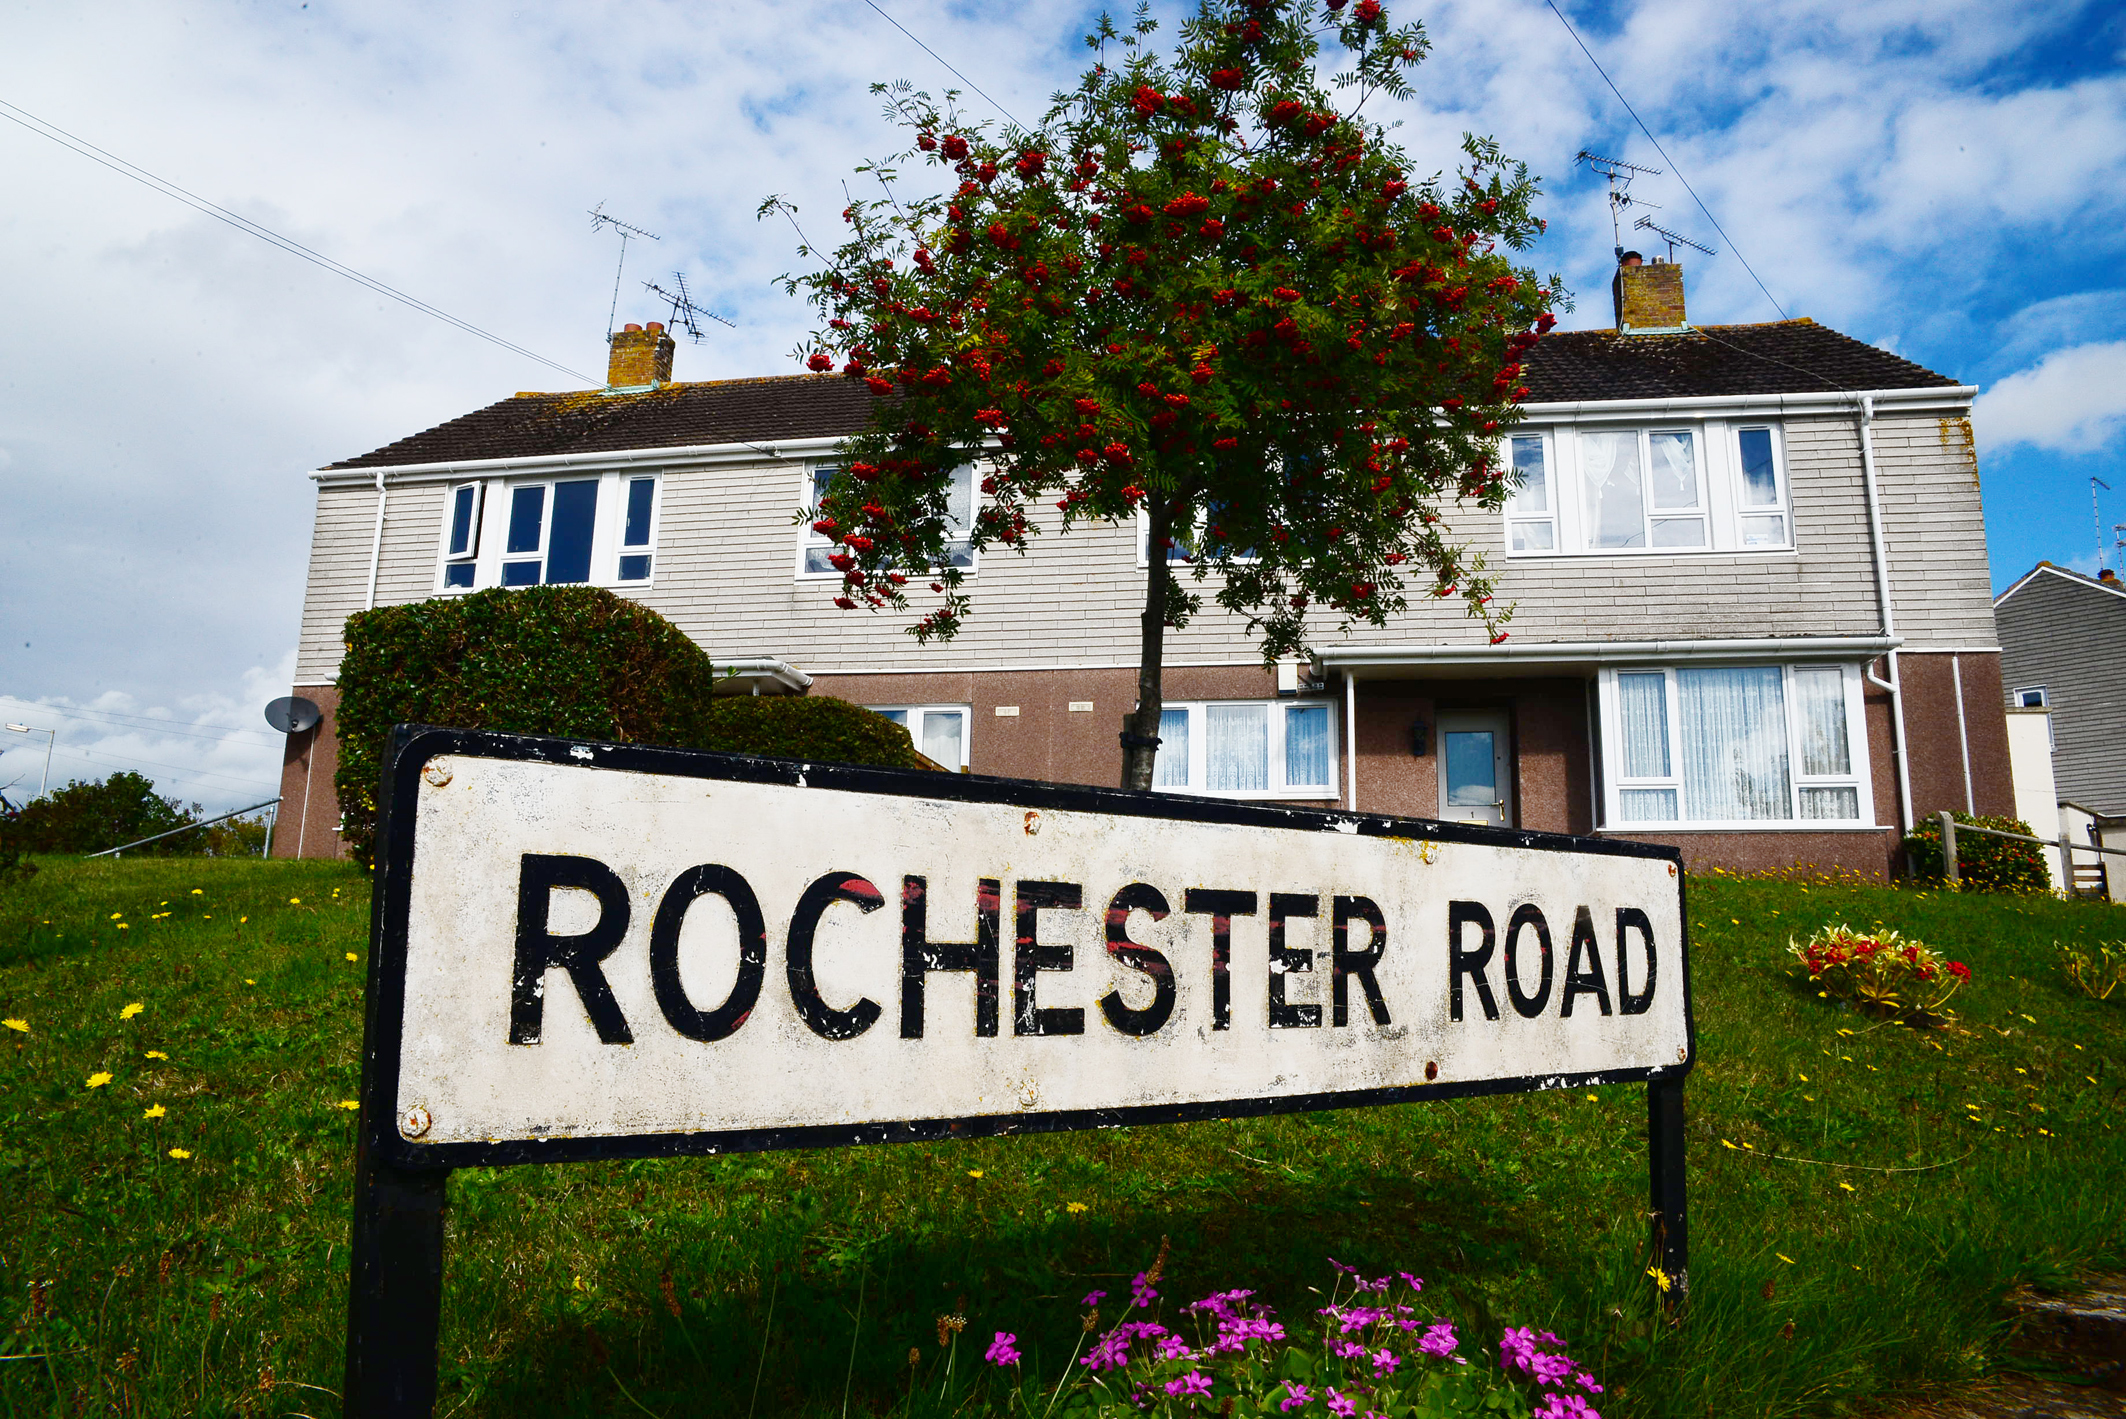 Rochester road.